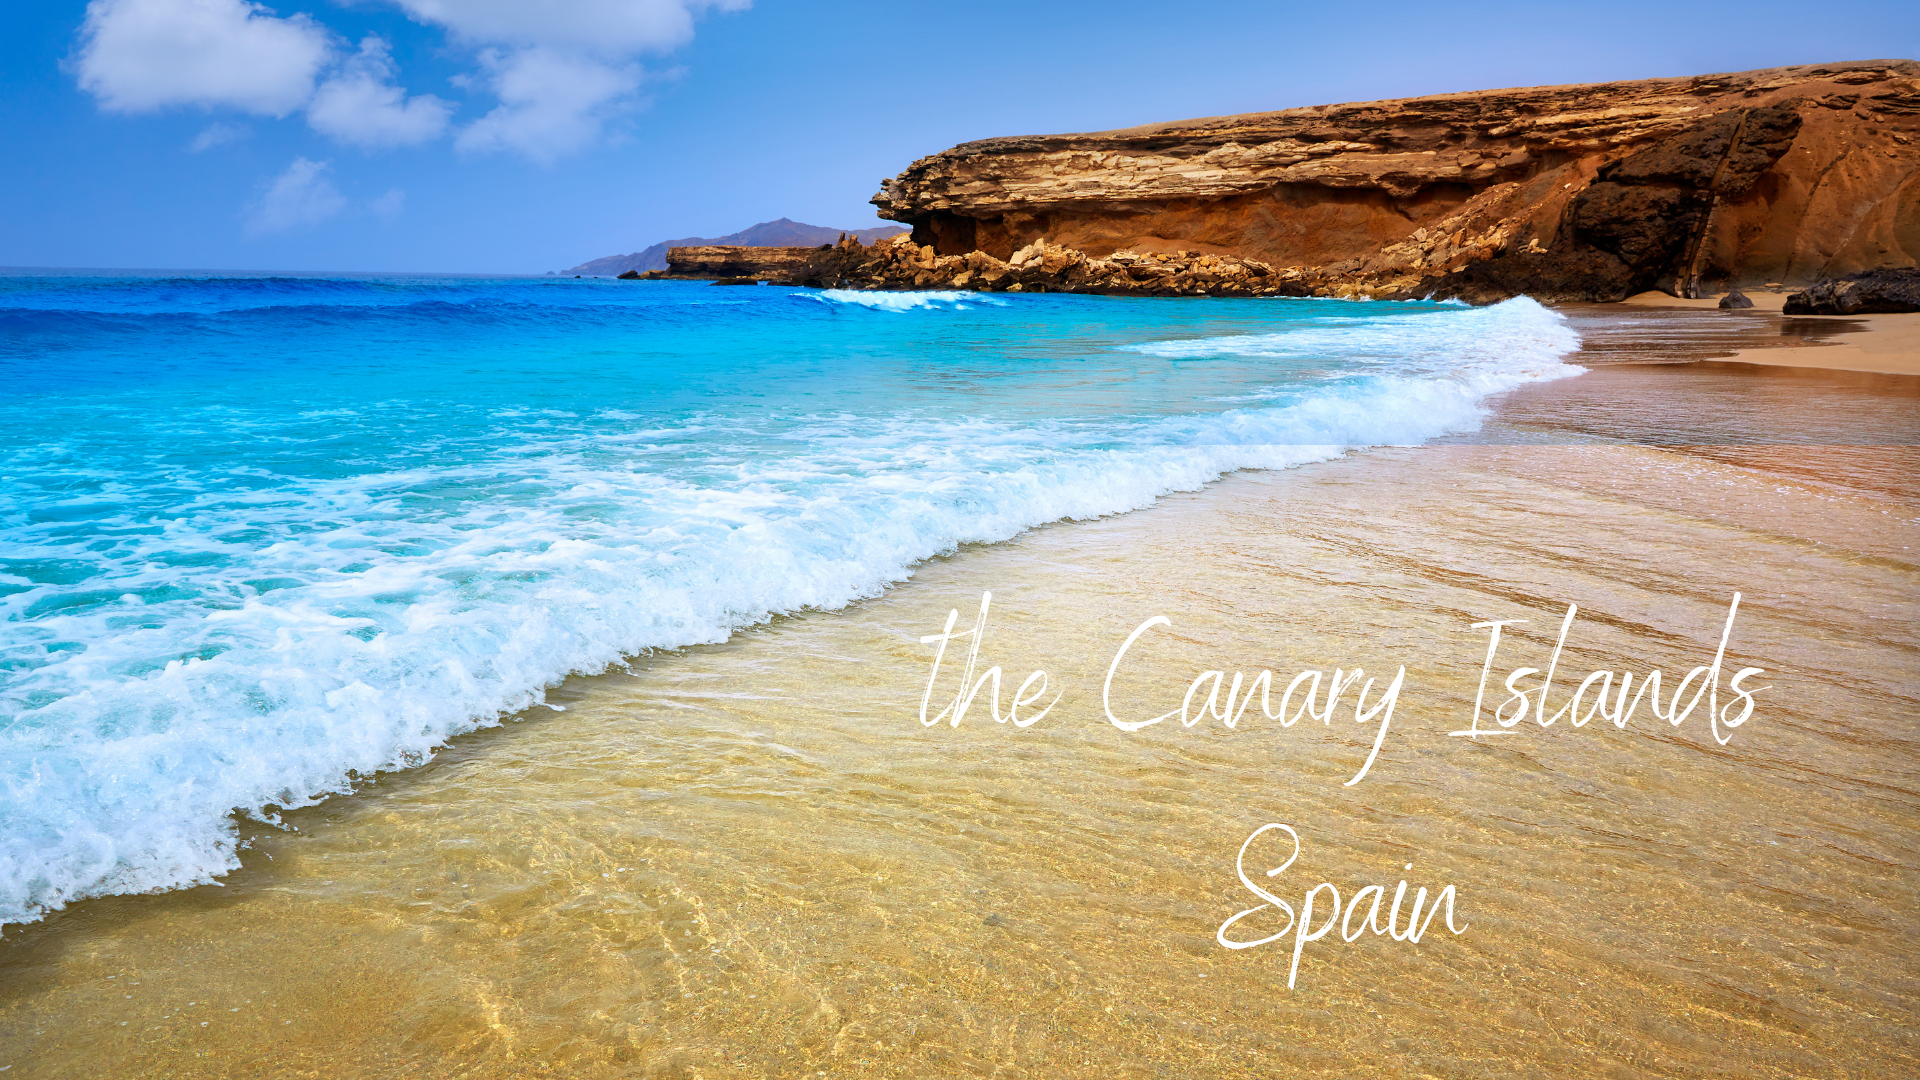 Beach vacation in Spain